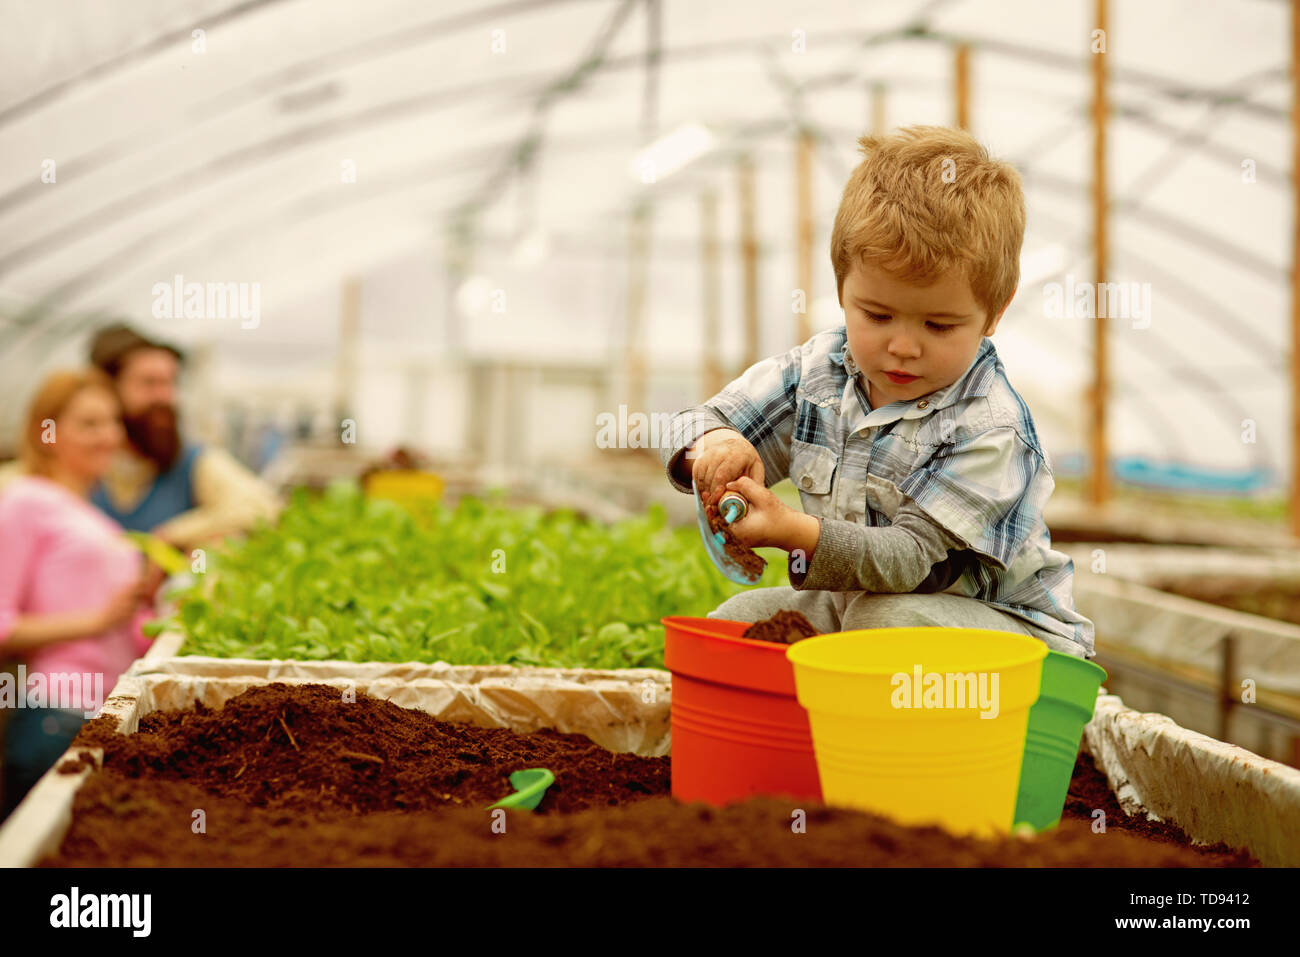 happy family. happy family workign with soil in garden. happy family in greenhouse. happy family in farm. new life - Stock Image